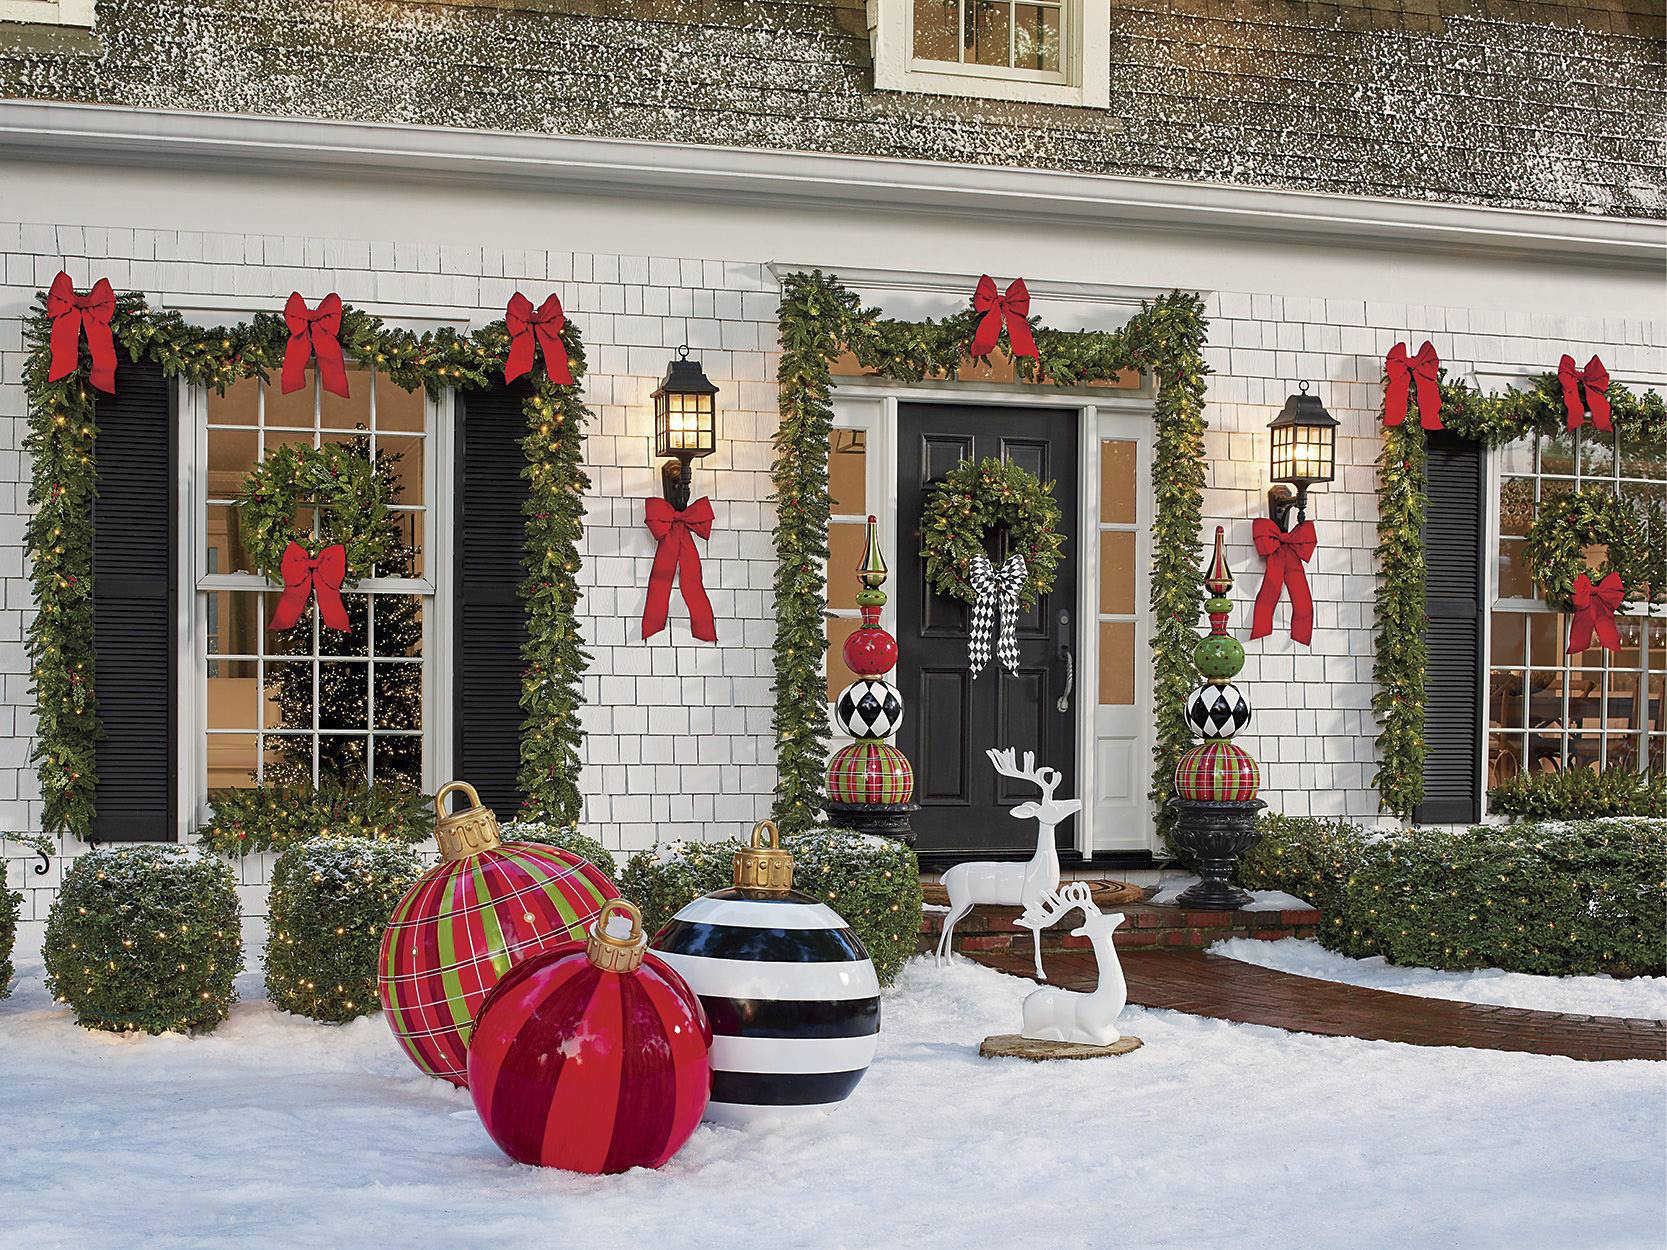 Porch Decor For Christmas  Christmas Porch Decorations 15 Holly Jolly Looks